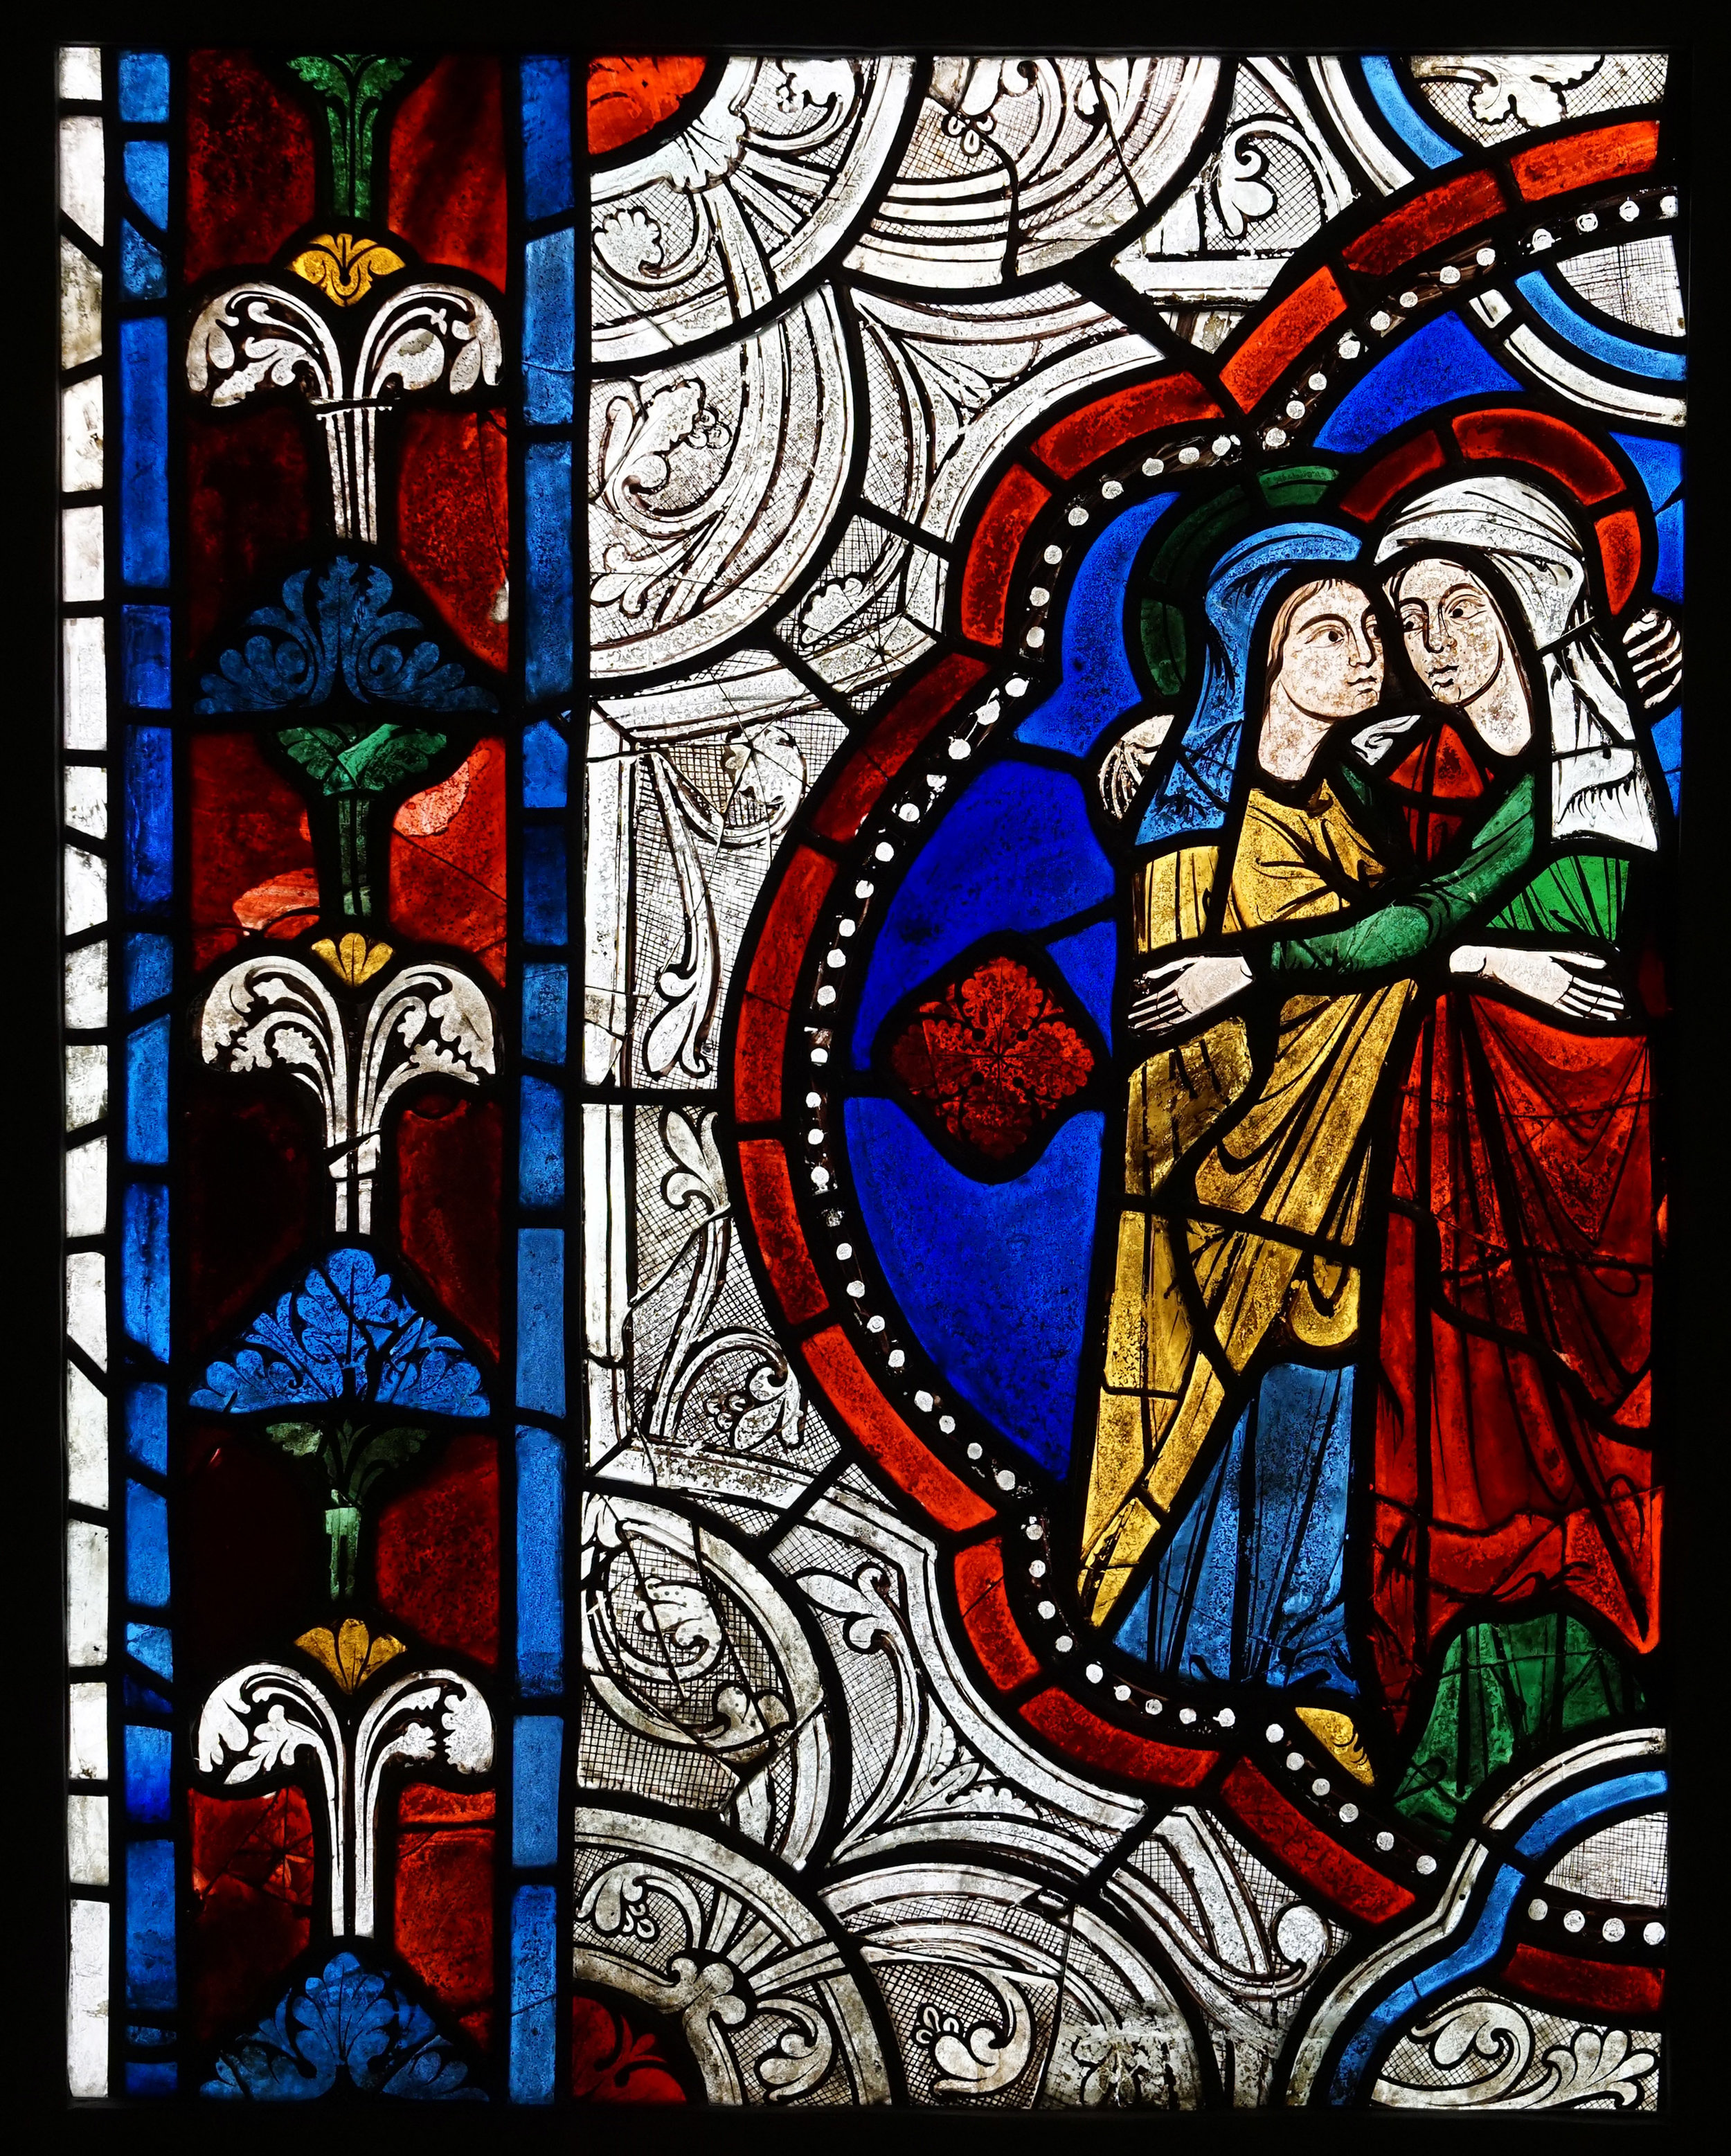 Figure 1:The Visitation. From the Church of Sainte-Radegonde in Poitiers, France, c. 1270-75. Now in Glencairn Museum, Bryn Athyn, PA, 03.SG.43.